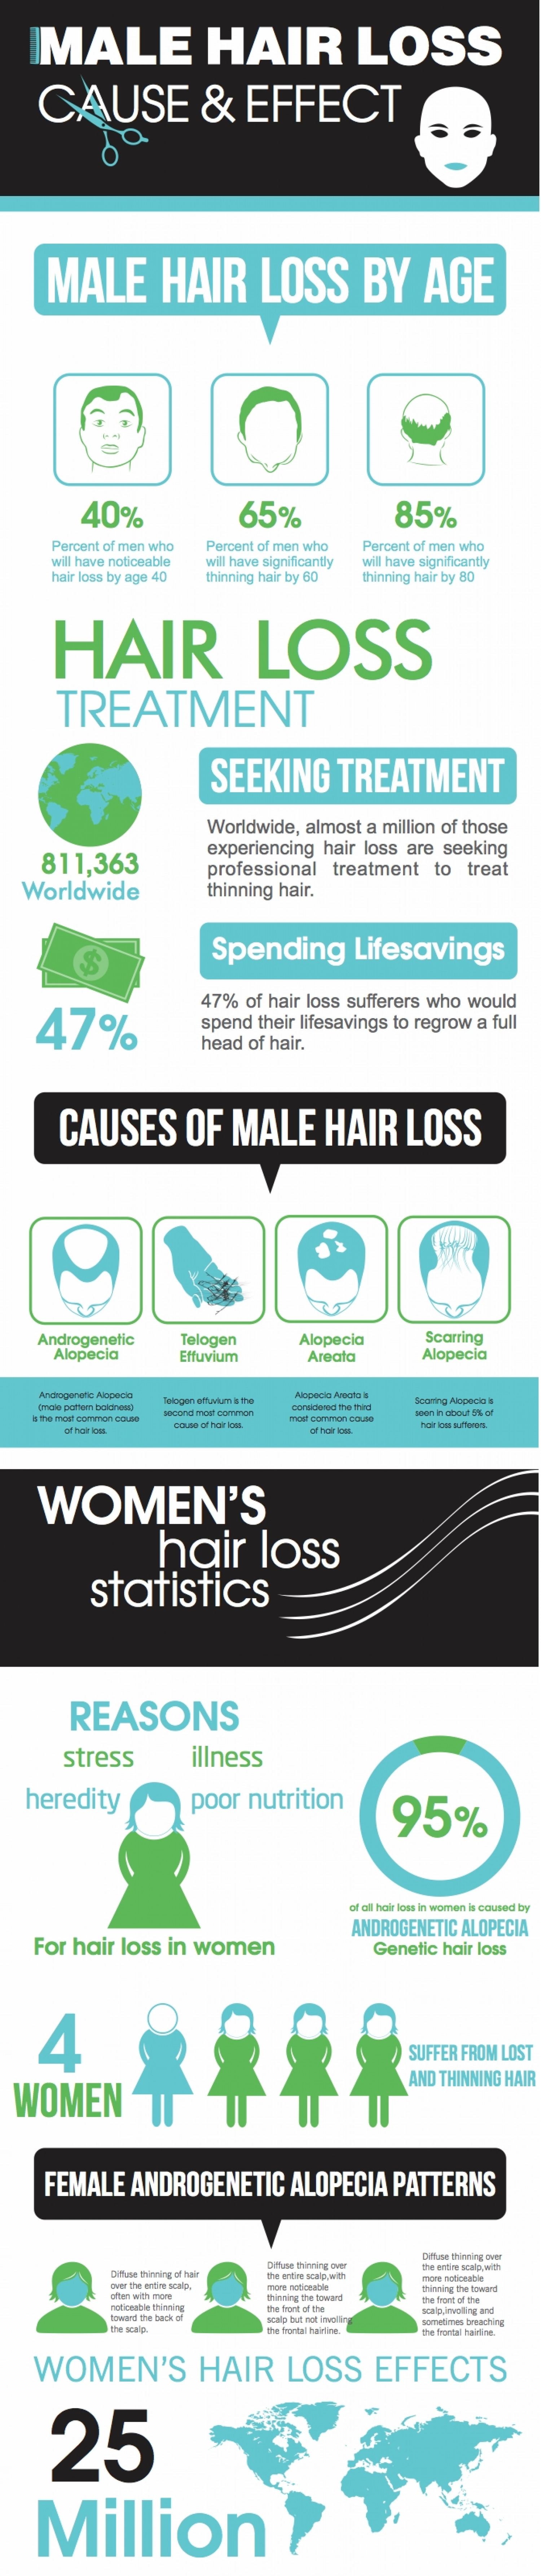 Hair Loss Causes & Treatment Infographic